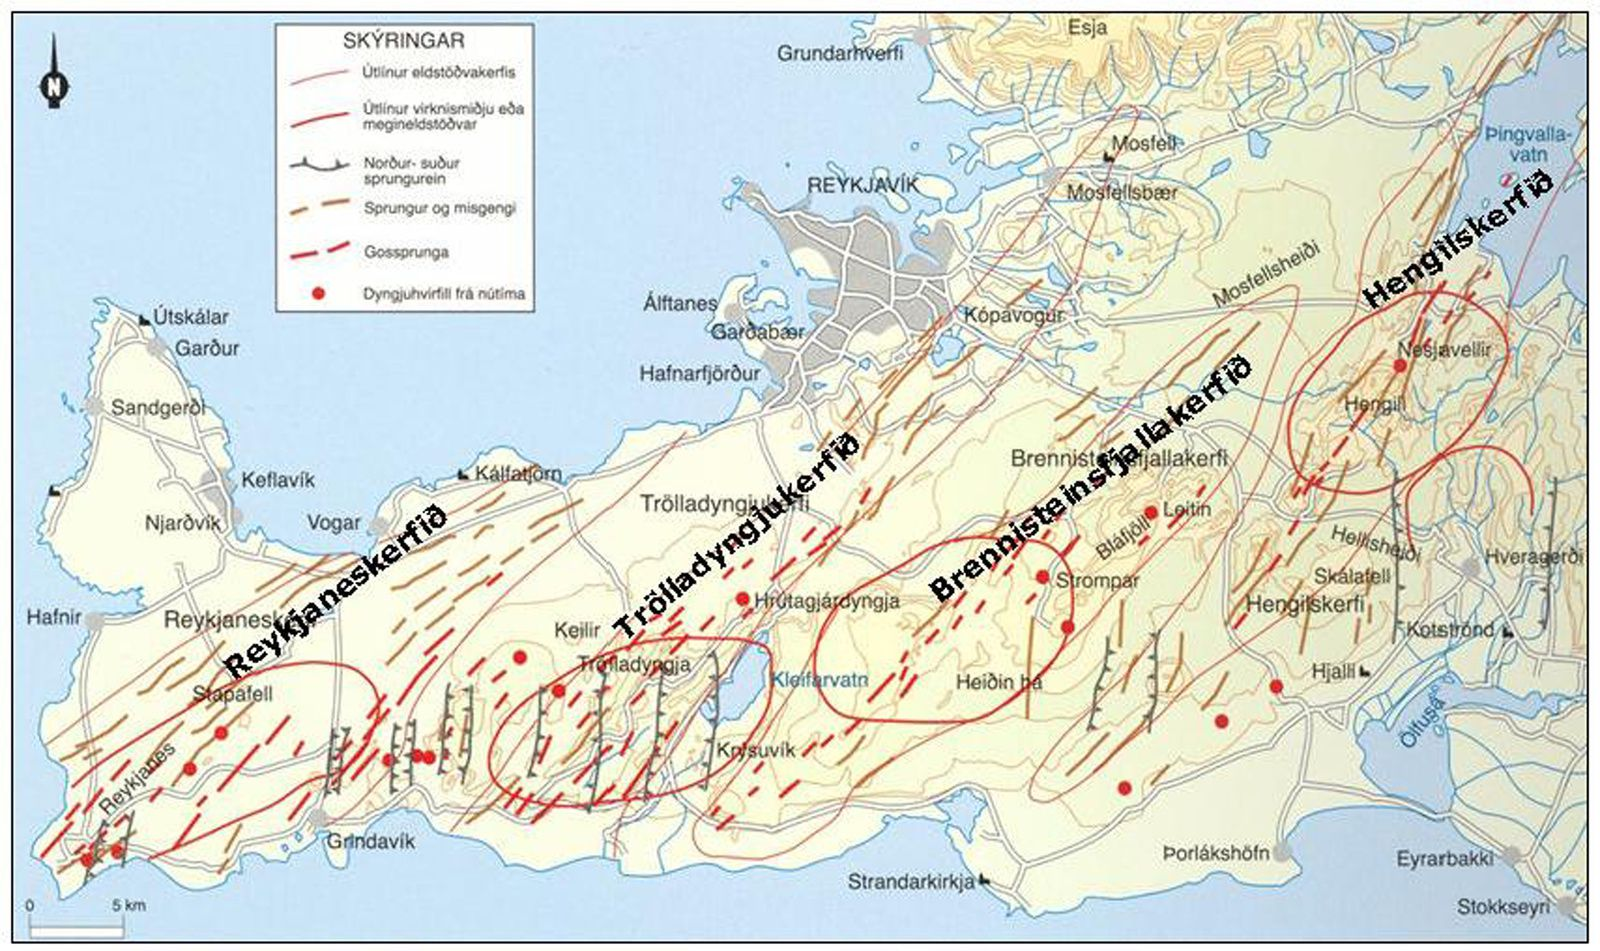 Fissure systems in steps of the Reykjanes Peninsula.